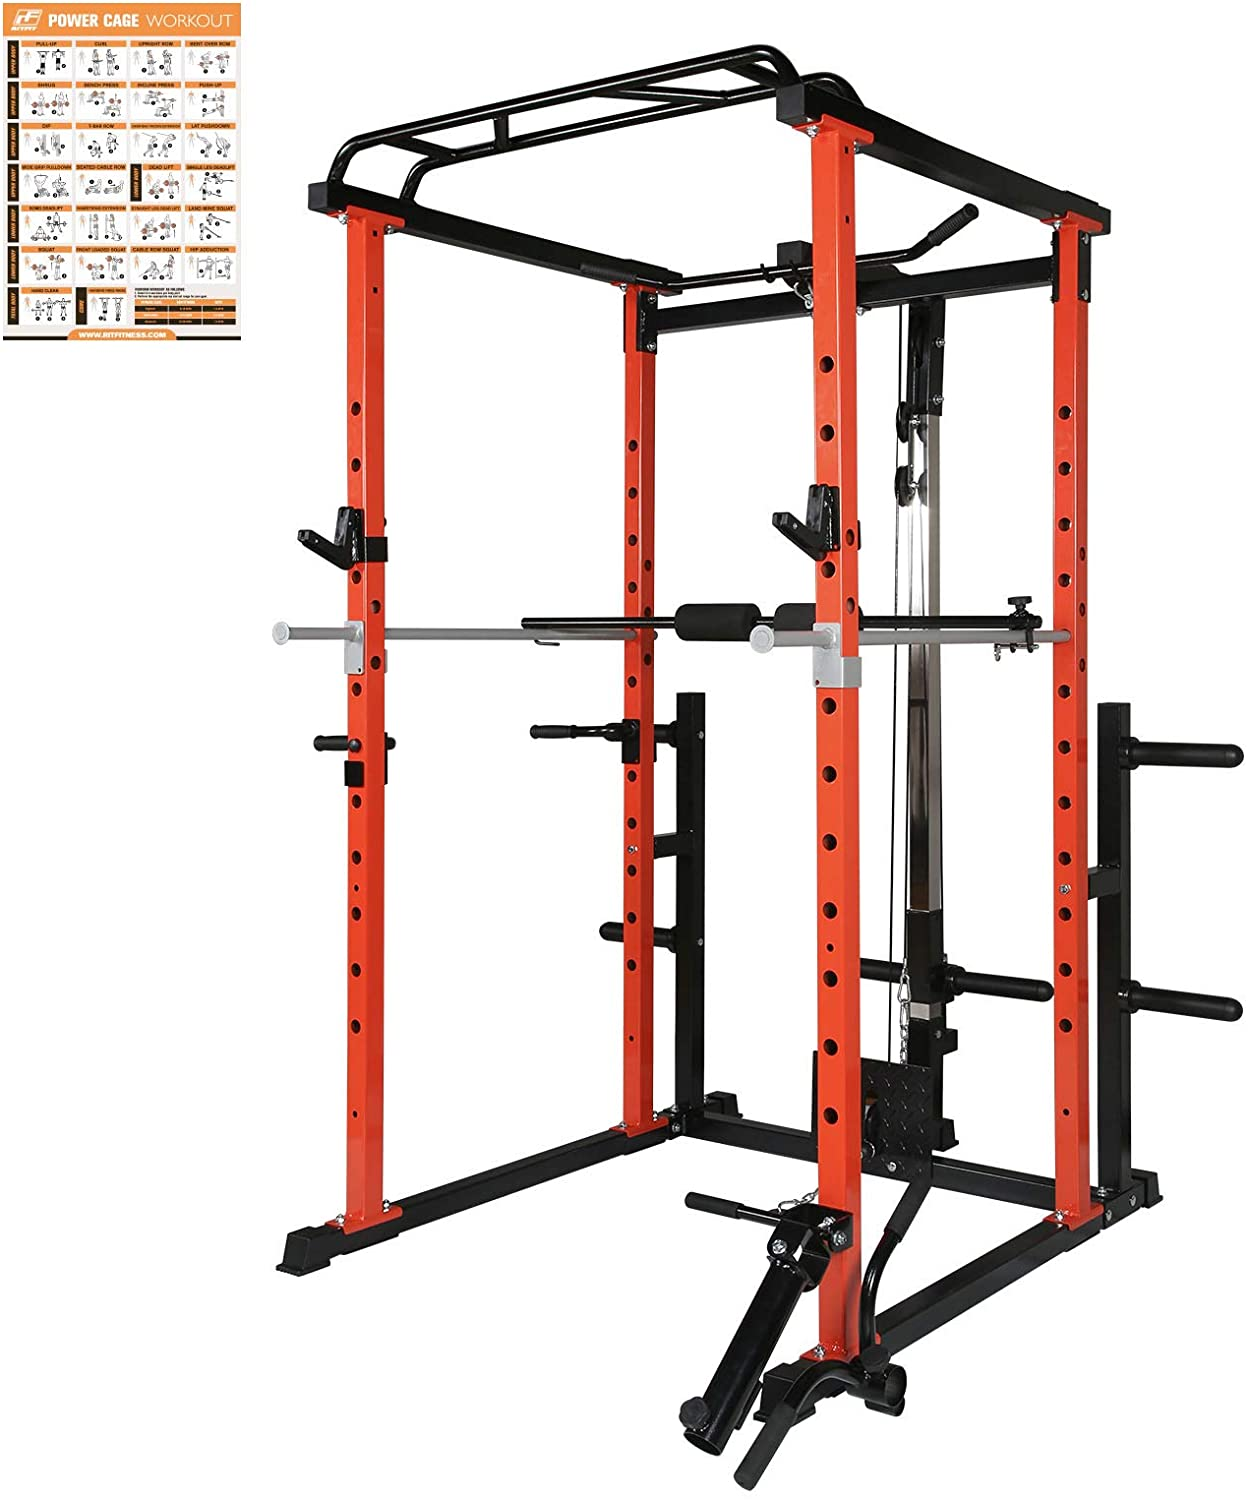 RitFit Power Cage with LAT Pull Down and 360° Landmine, 1000LB Capacity Power Rack Full Home Gym for Weightlifting, Come with J-Cups,Dip Bars and Other Attachments